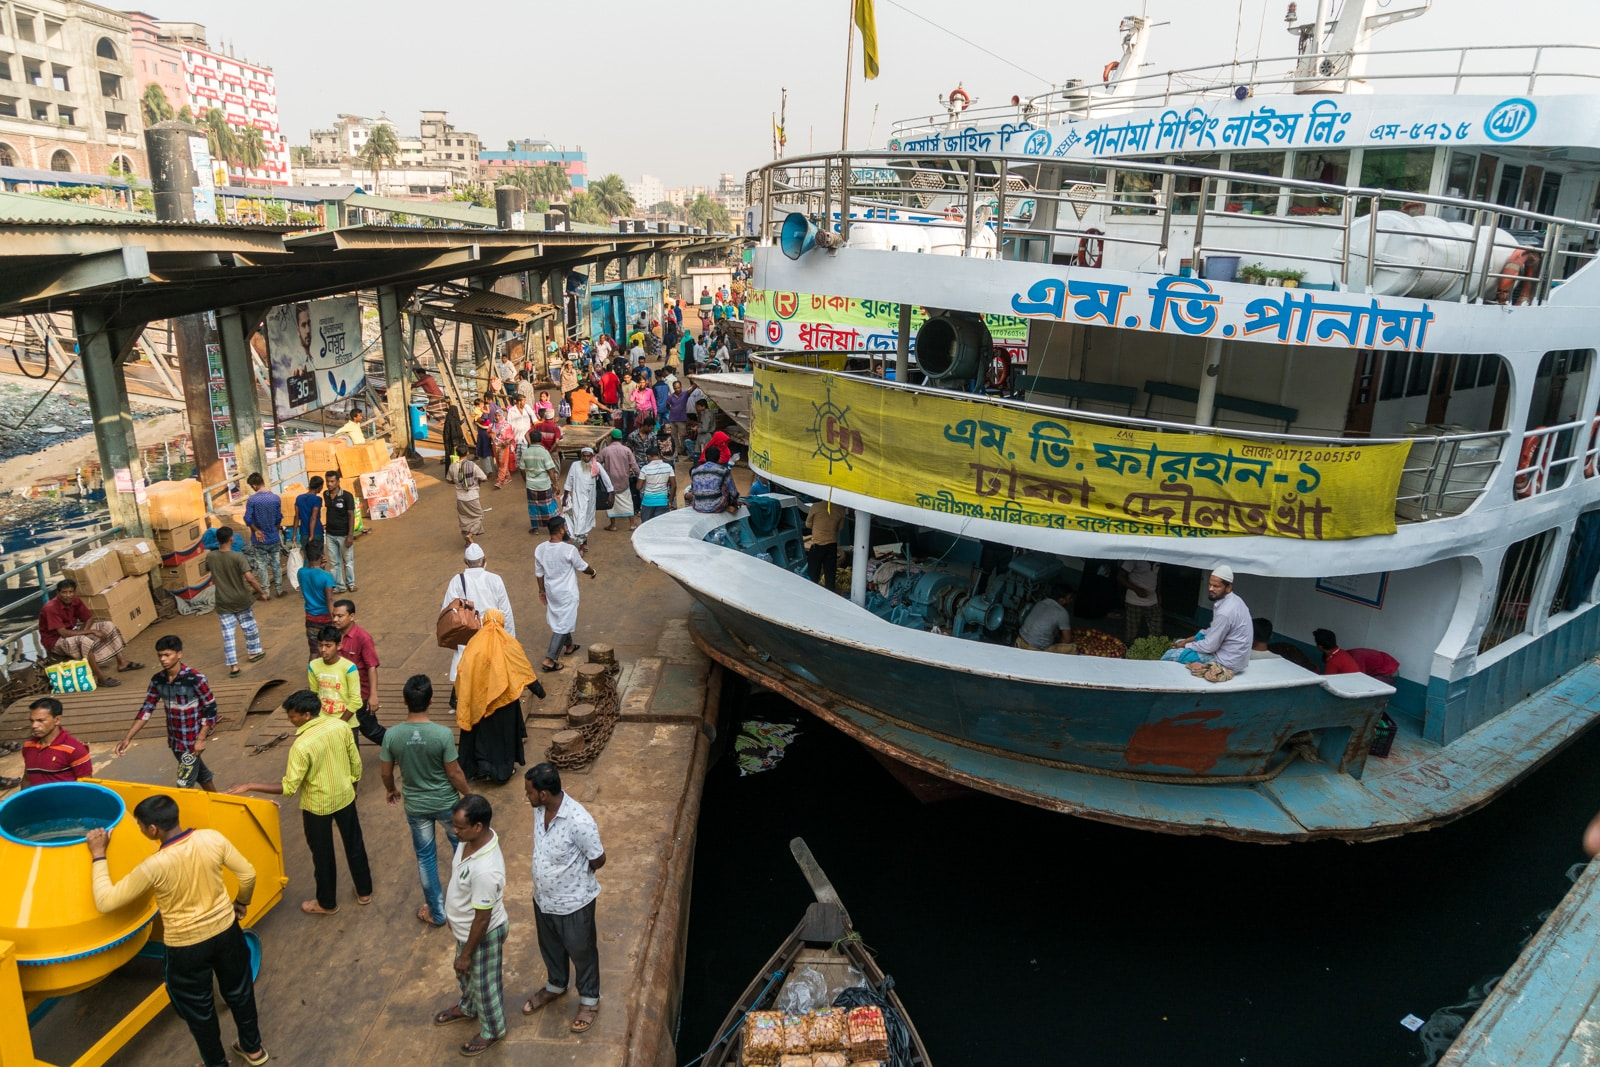 Guide to launches in Bangladesh - Launches in a row at Sadarghat boat terminal in Dhaka - Lost With Purpose travel blog